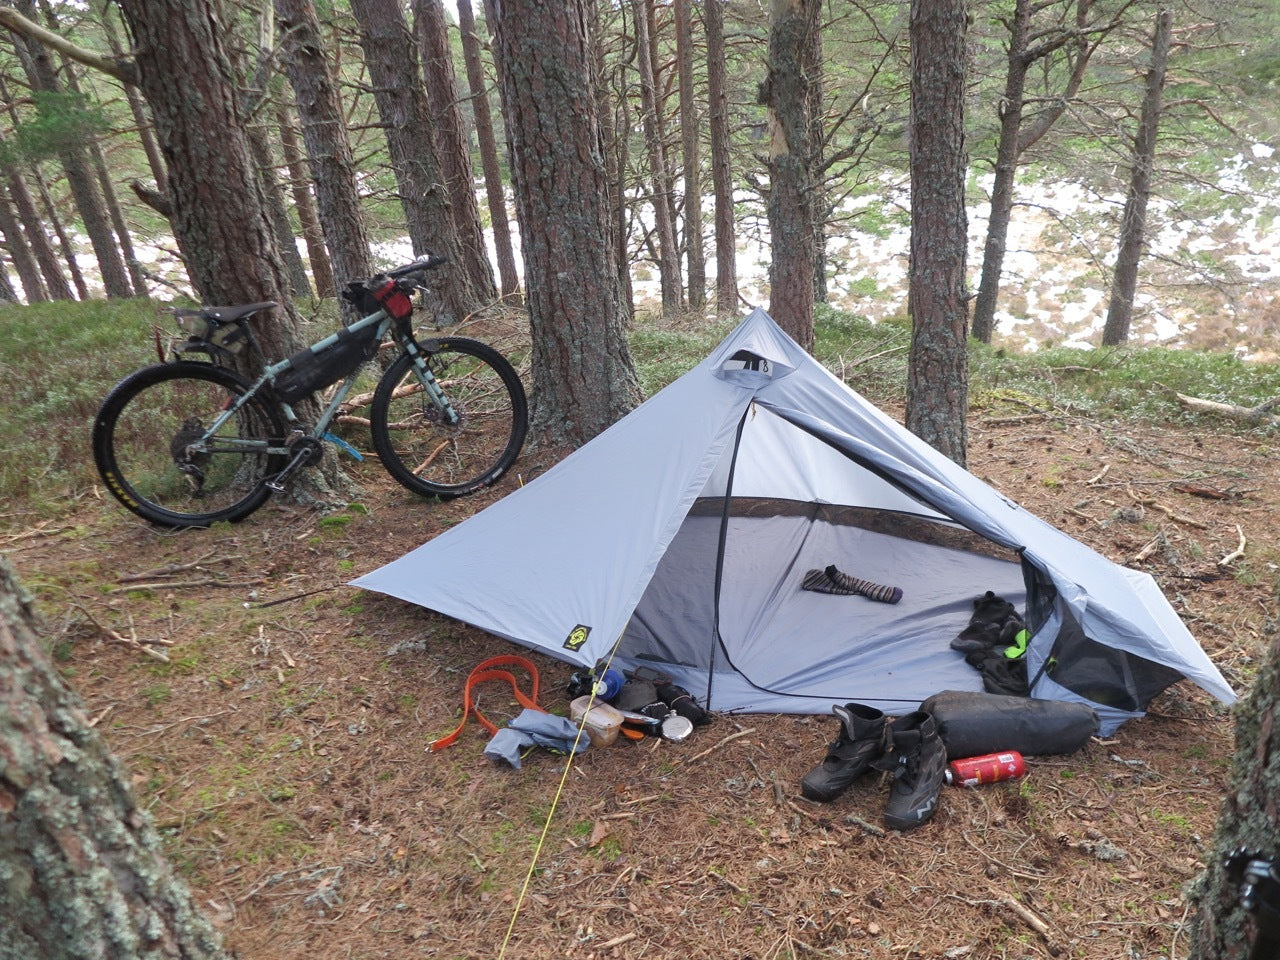 Midweek Bikepacking Adventures